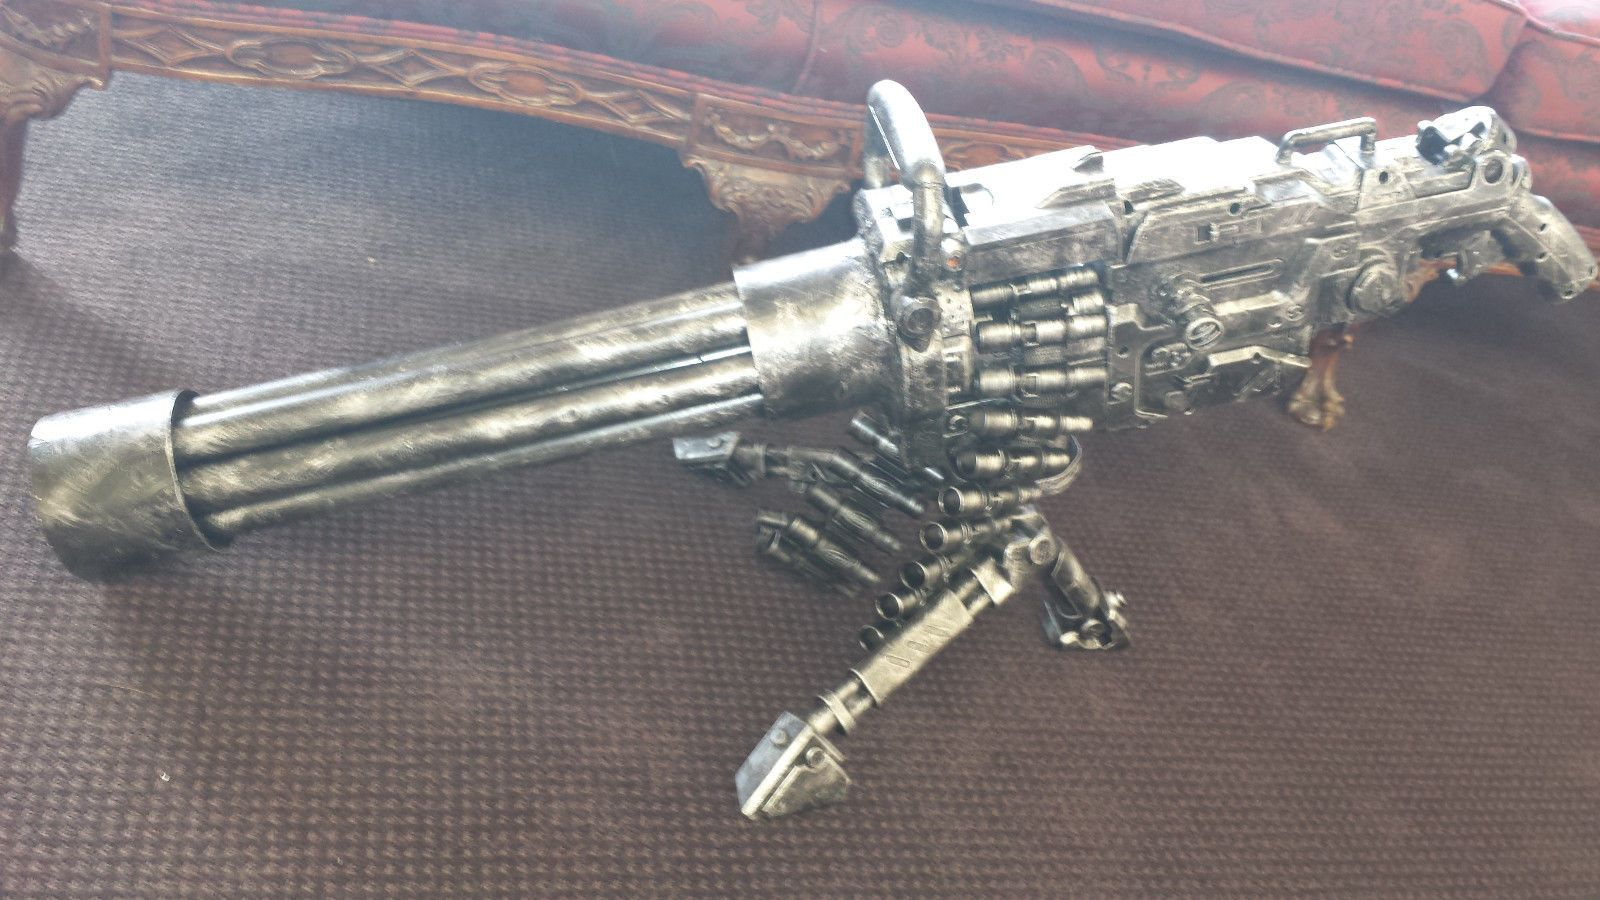 Steampunk Nerf Gun Vulcan Mod Movie Prop Machine Age Gatling Cosplay EBF 25  OOAK | eBay